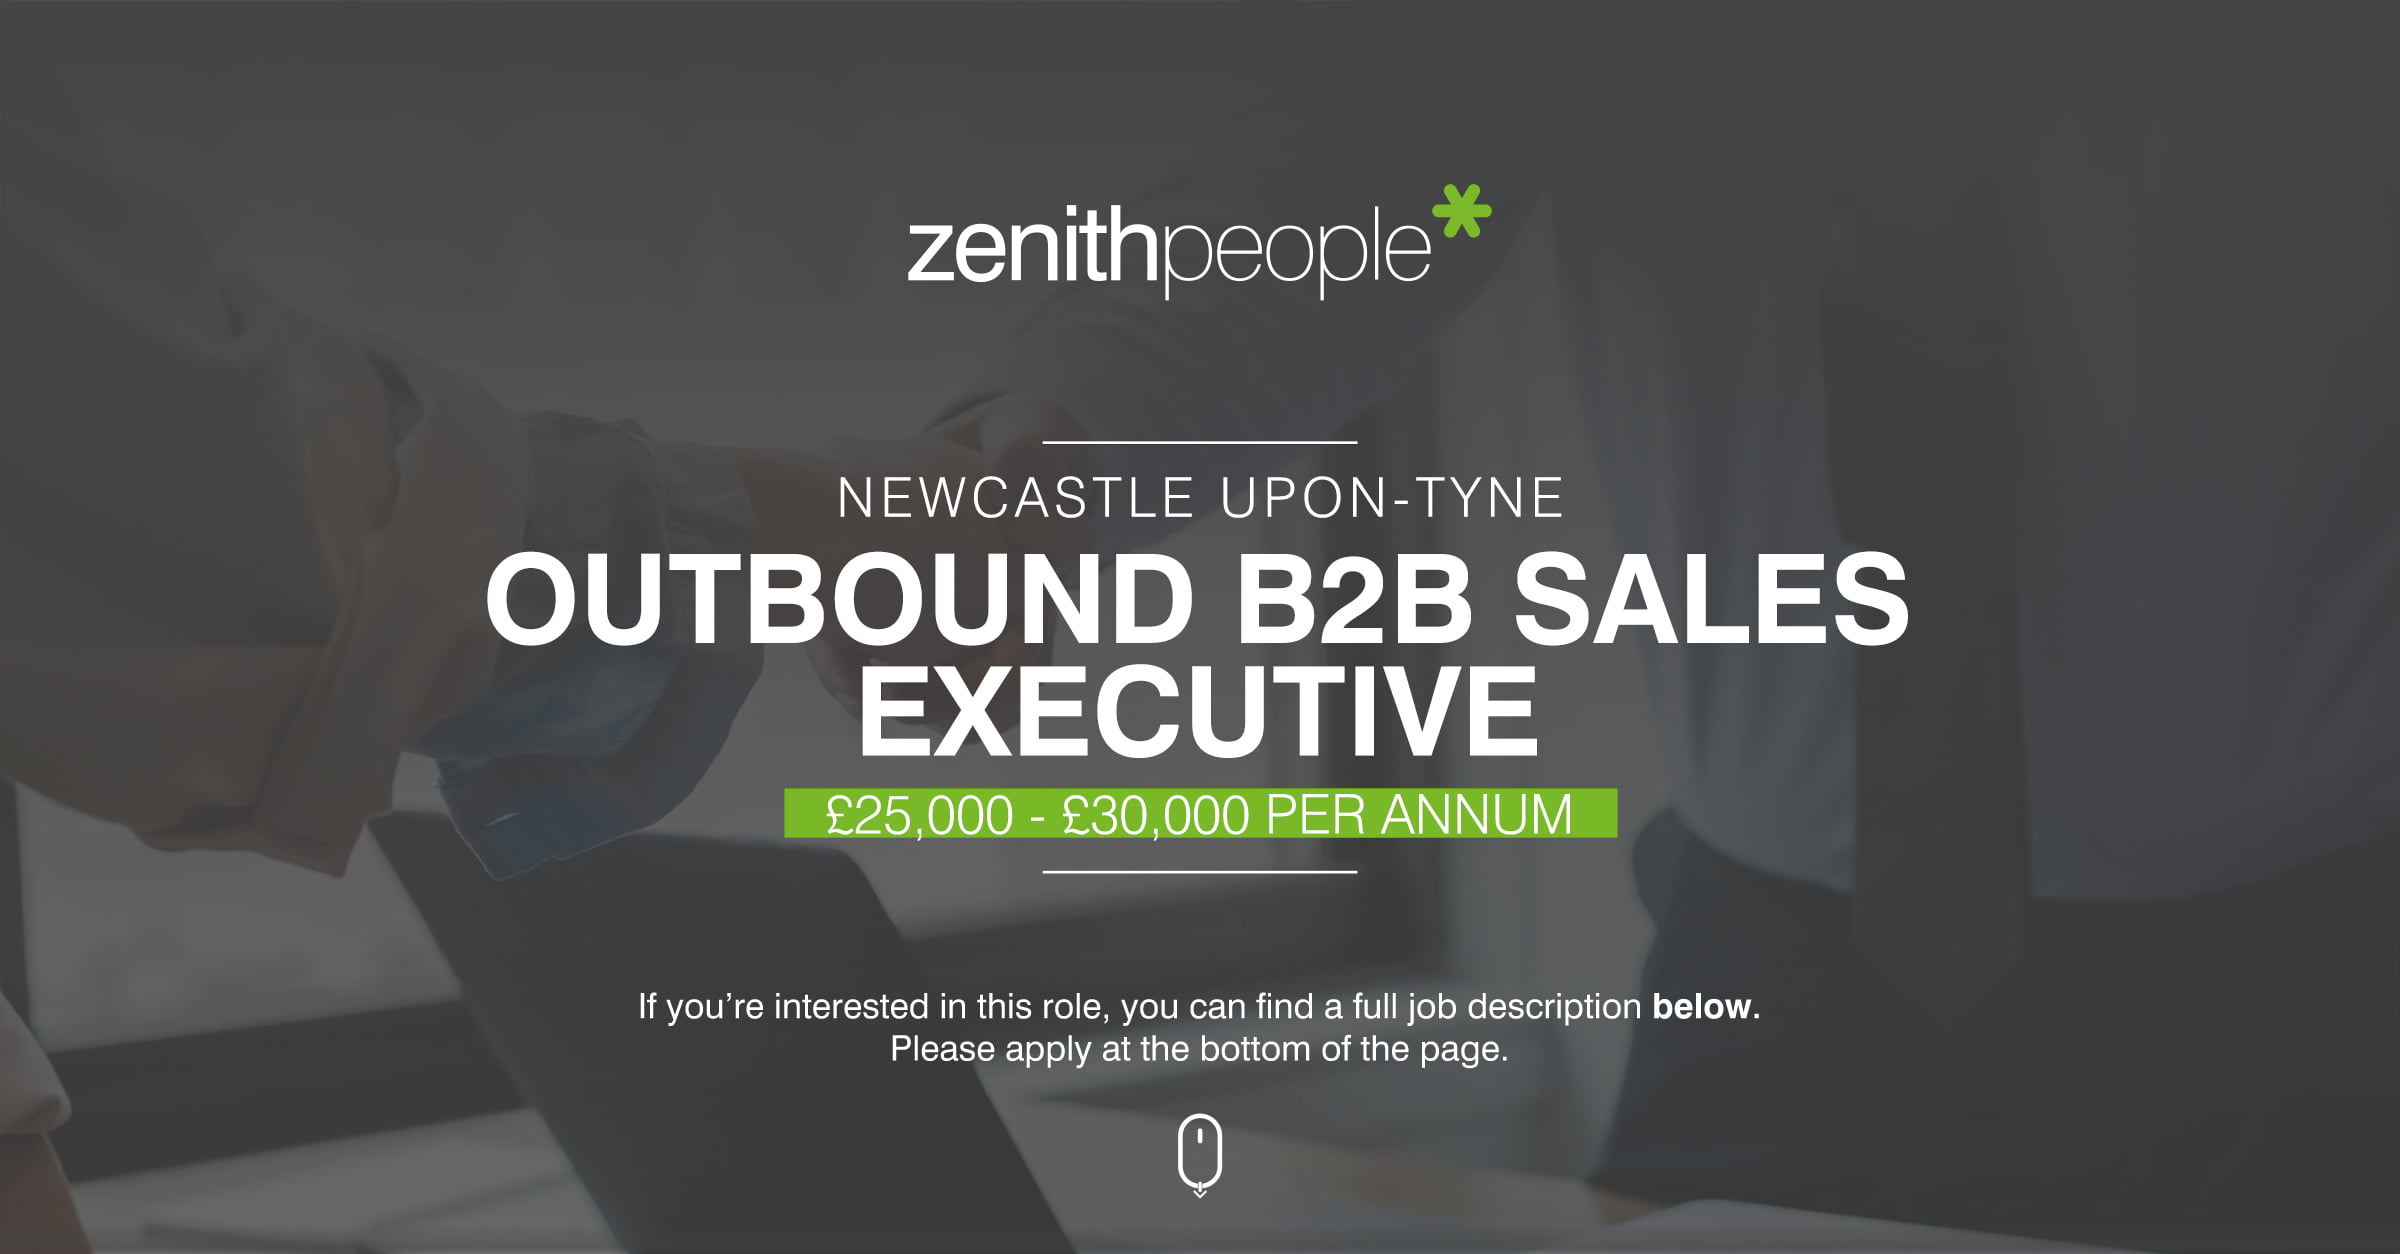 Outbound B2B Sales Executive Advert with location and salary information